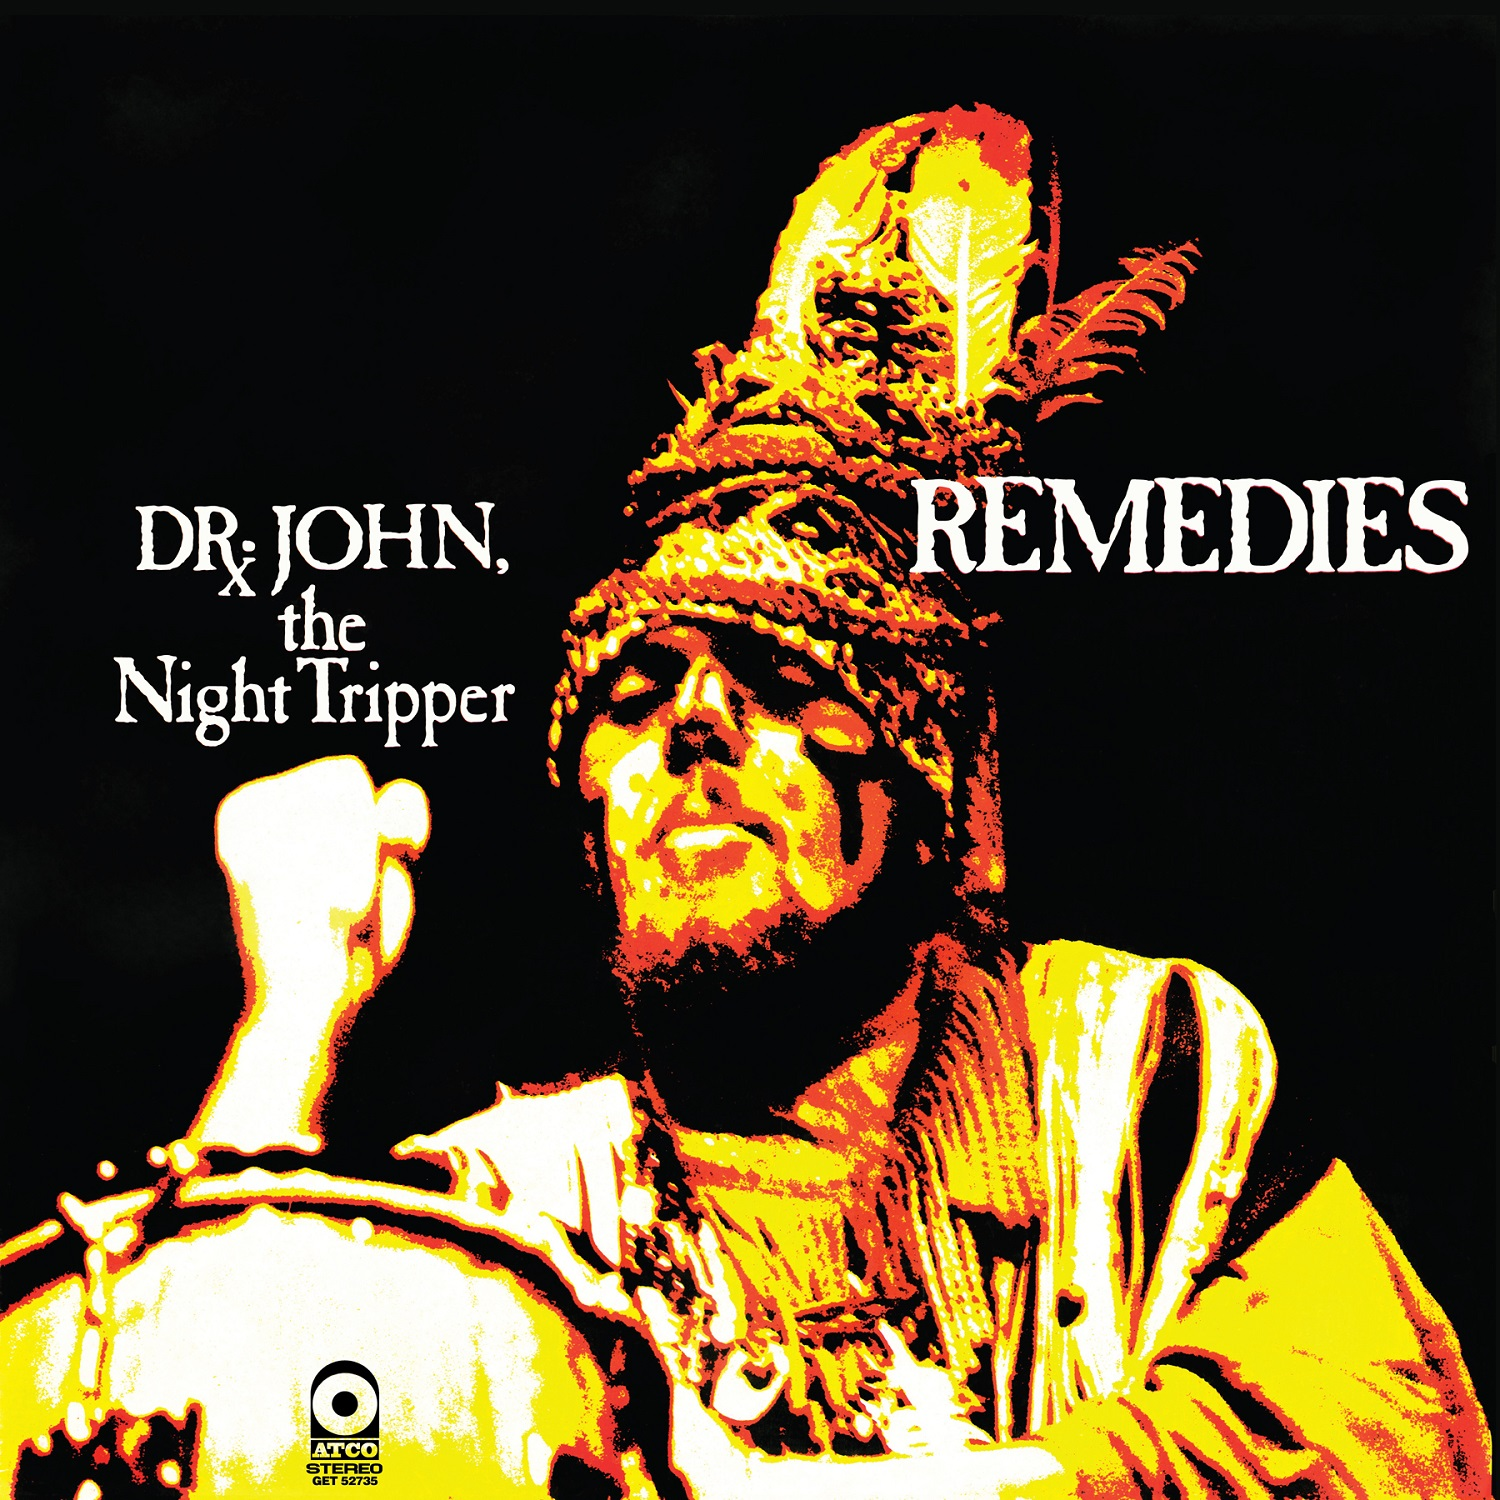 Dr. John - Remedies [RSD Drops Aug 2020]